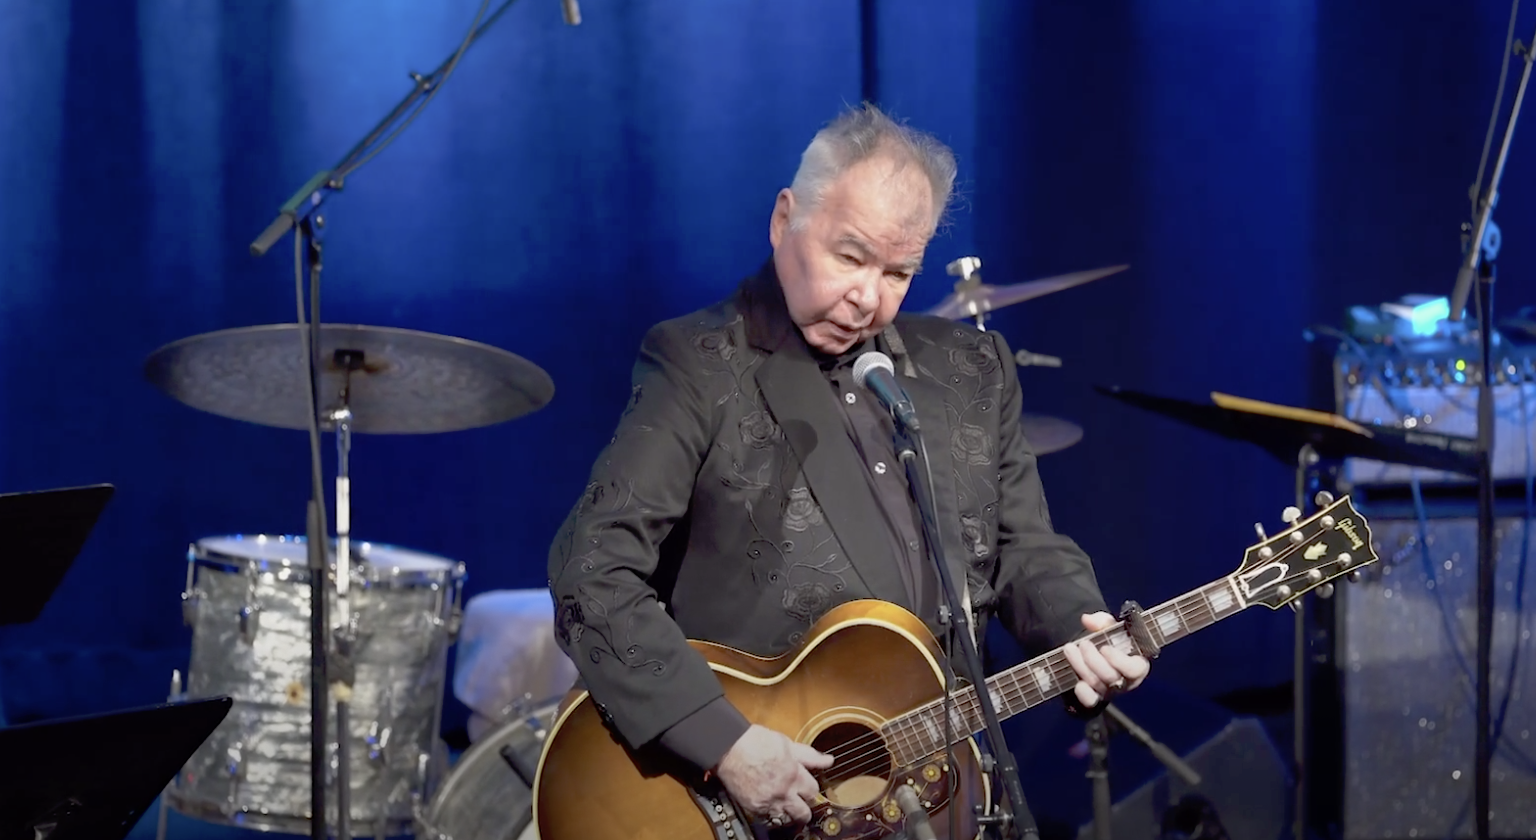 John Prine Sings Cowboy Jack Clement's 'Ballad of a Teenage Queen' at Country Music Hall of Fame